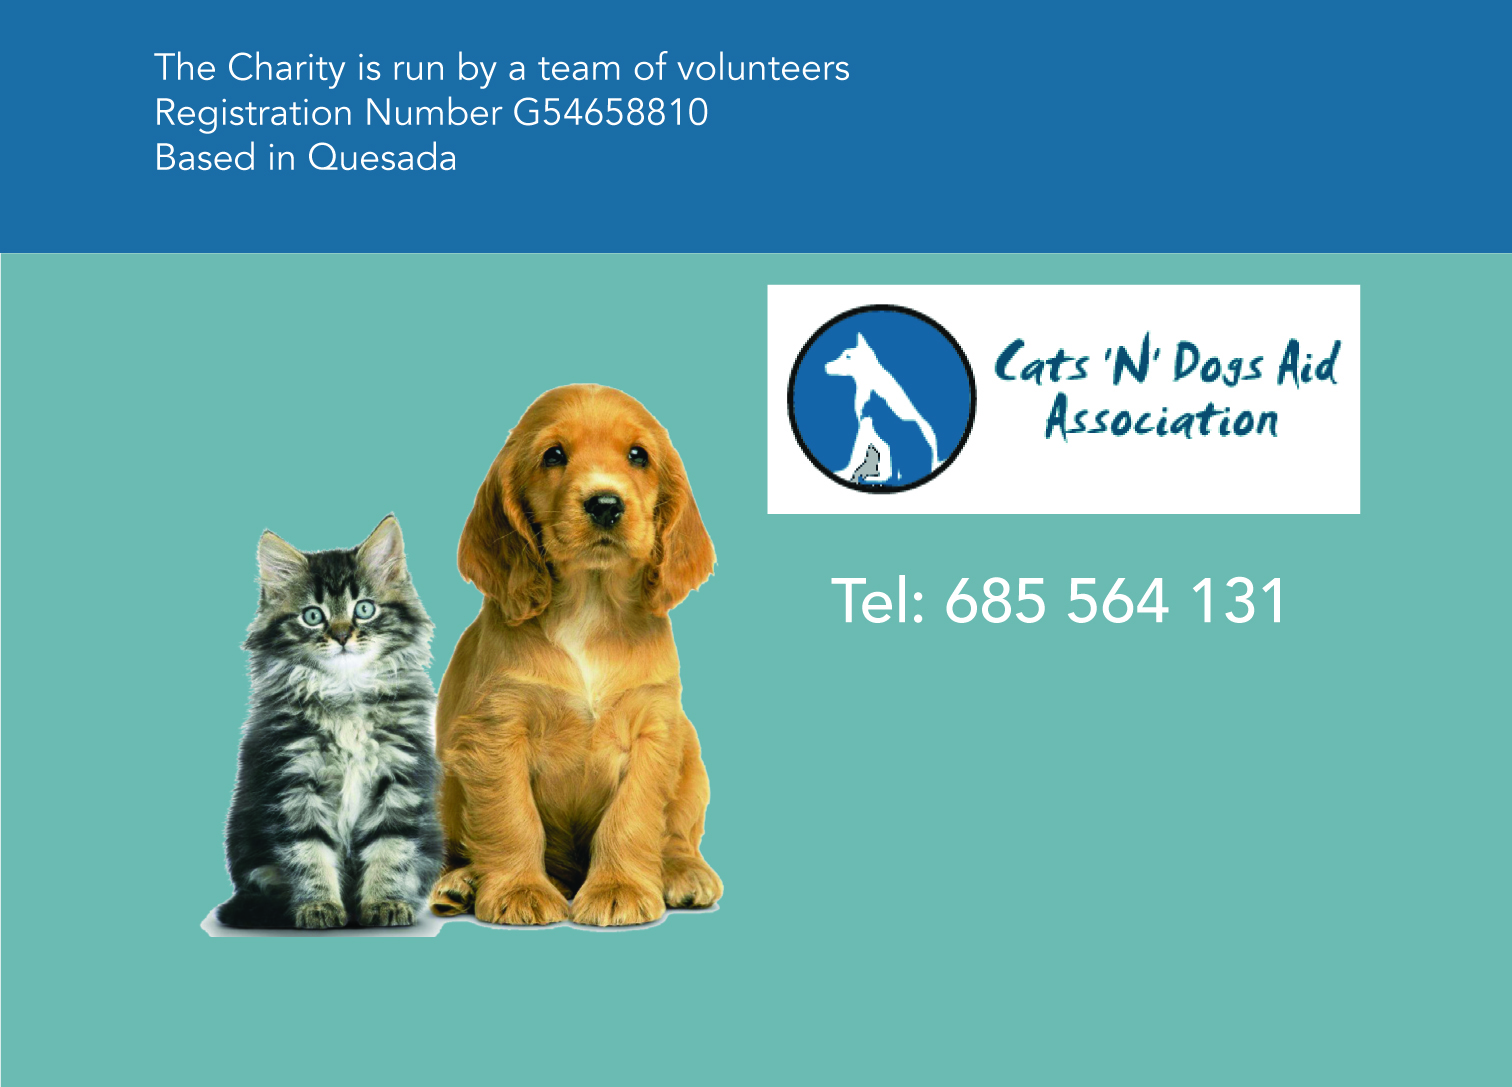 cats n dogs aid association gran alacant advertiser cats n dogs aid association formed in 2012 are a committee based organization seven people serving on the committee four of us previously working